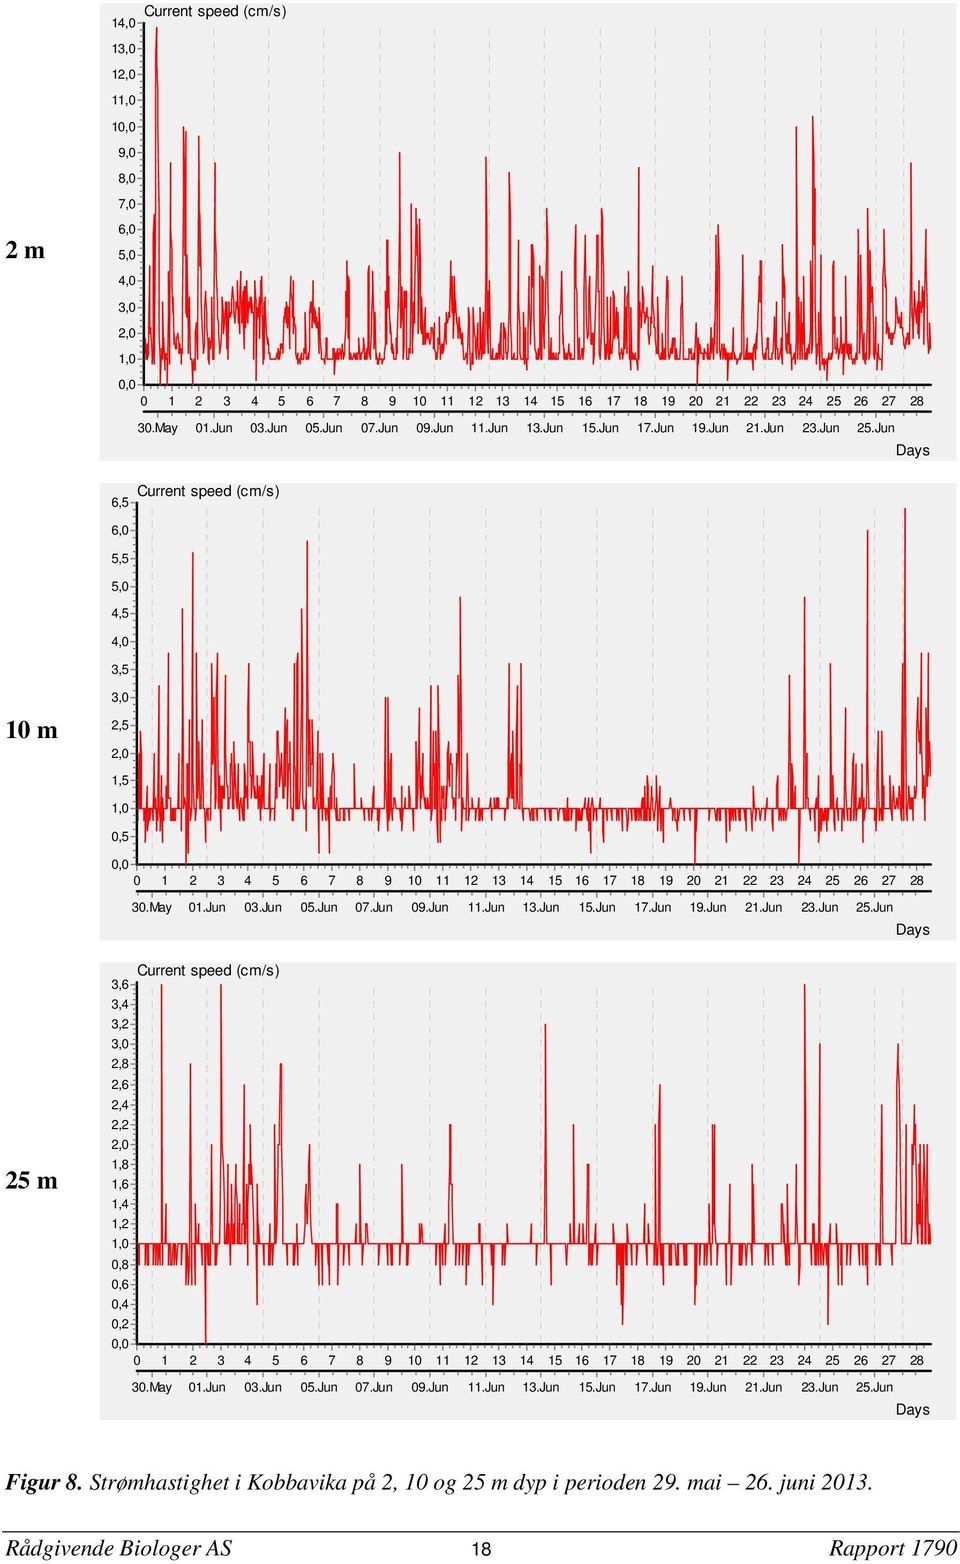 Jun Days Current speed (cm/s) 6,5 6,0 5,5 5,0 4,5 4,0 3,5 10 m 3,0 2,5 2,0 1,5 1,0 0,5 0,0 0 1 2 3 4 5 6 7 8 9 10 11 12 13 14 15 16 17 18 19 20 21 22 23 24 25 26 27 28 30.May 01.Jun 03.Jun 05.Jun 07.